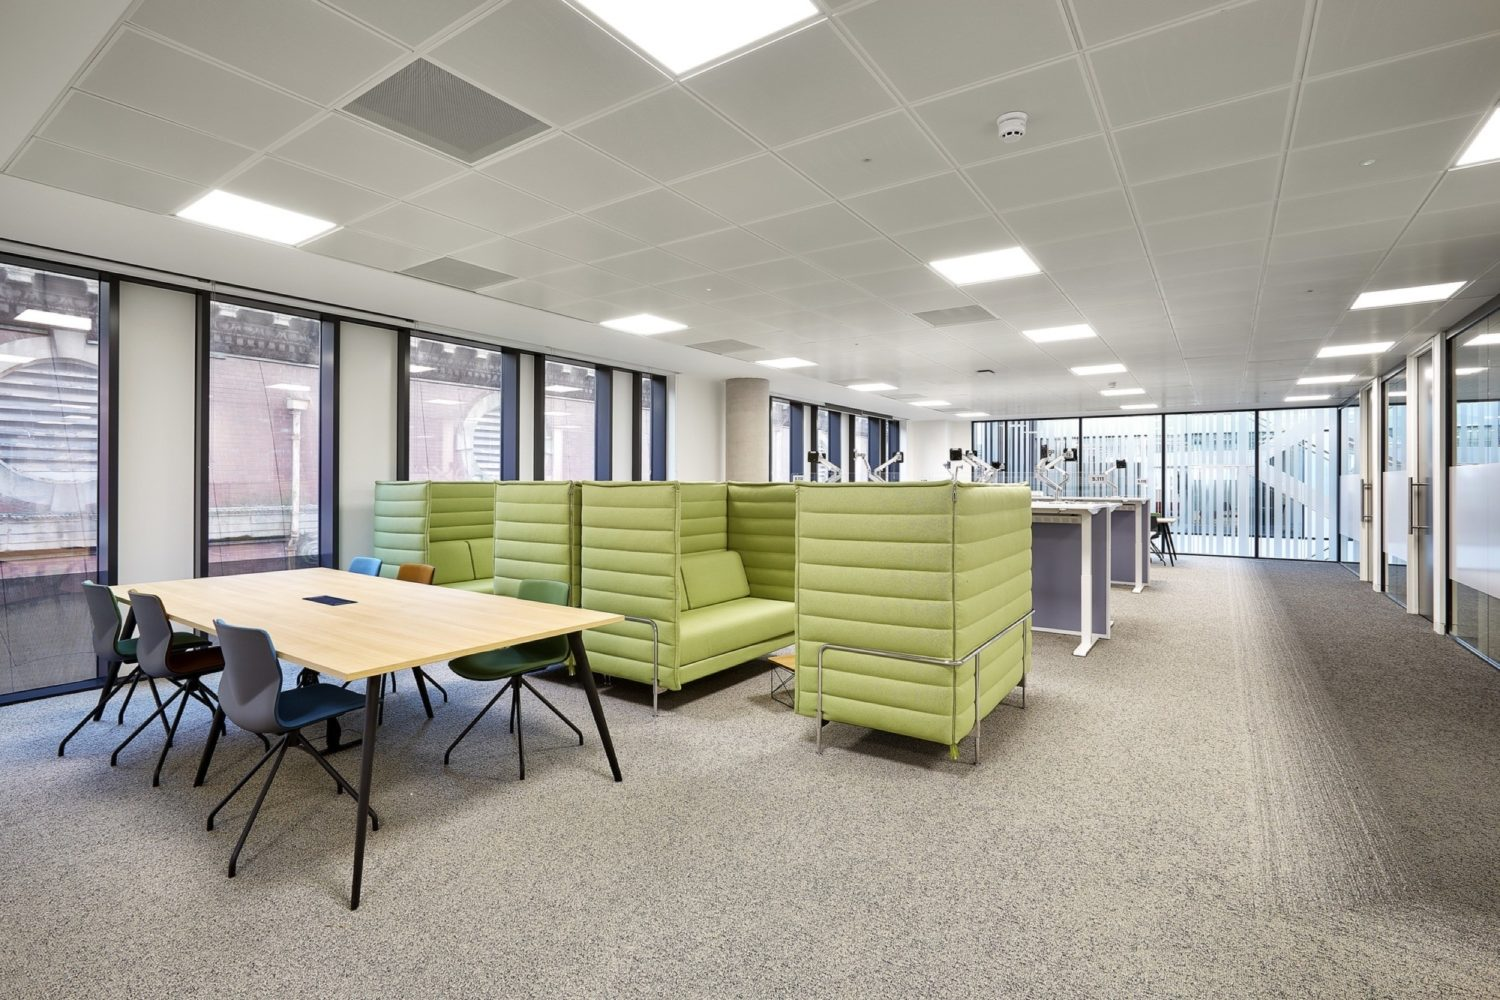 Simmons & Simmons open plan fit out